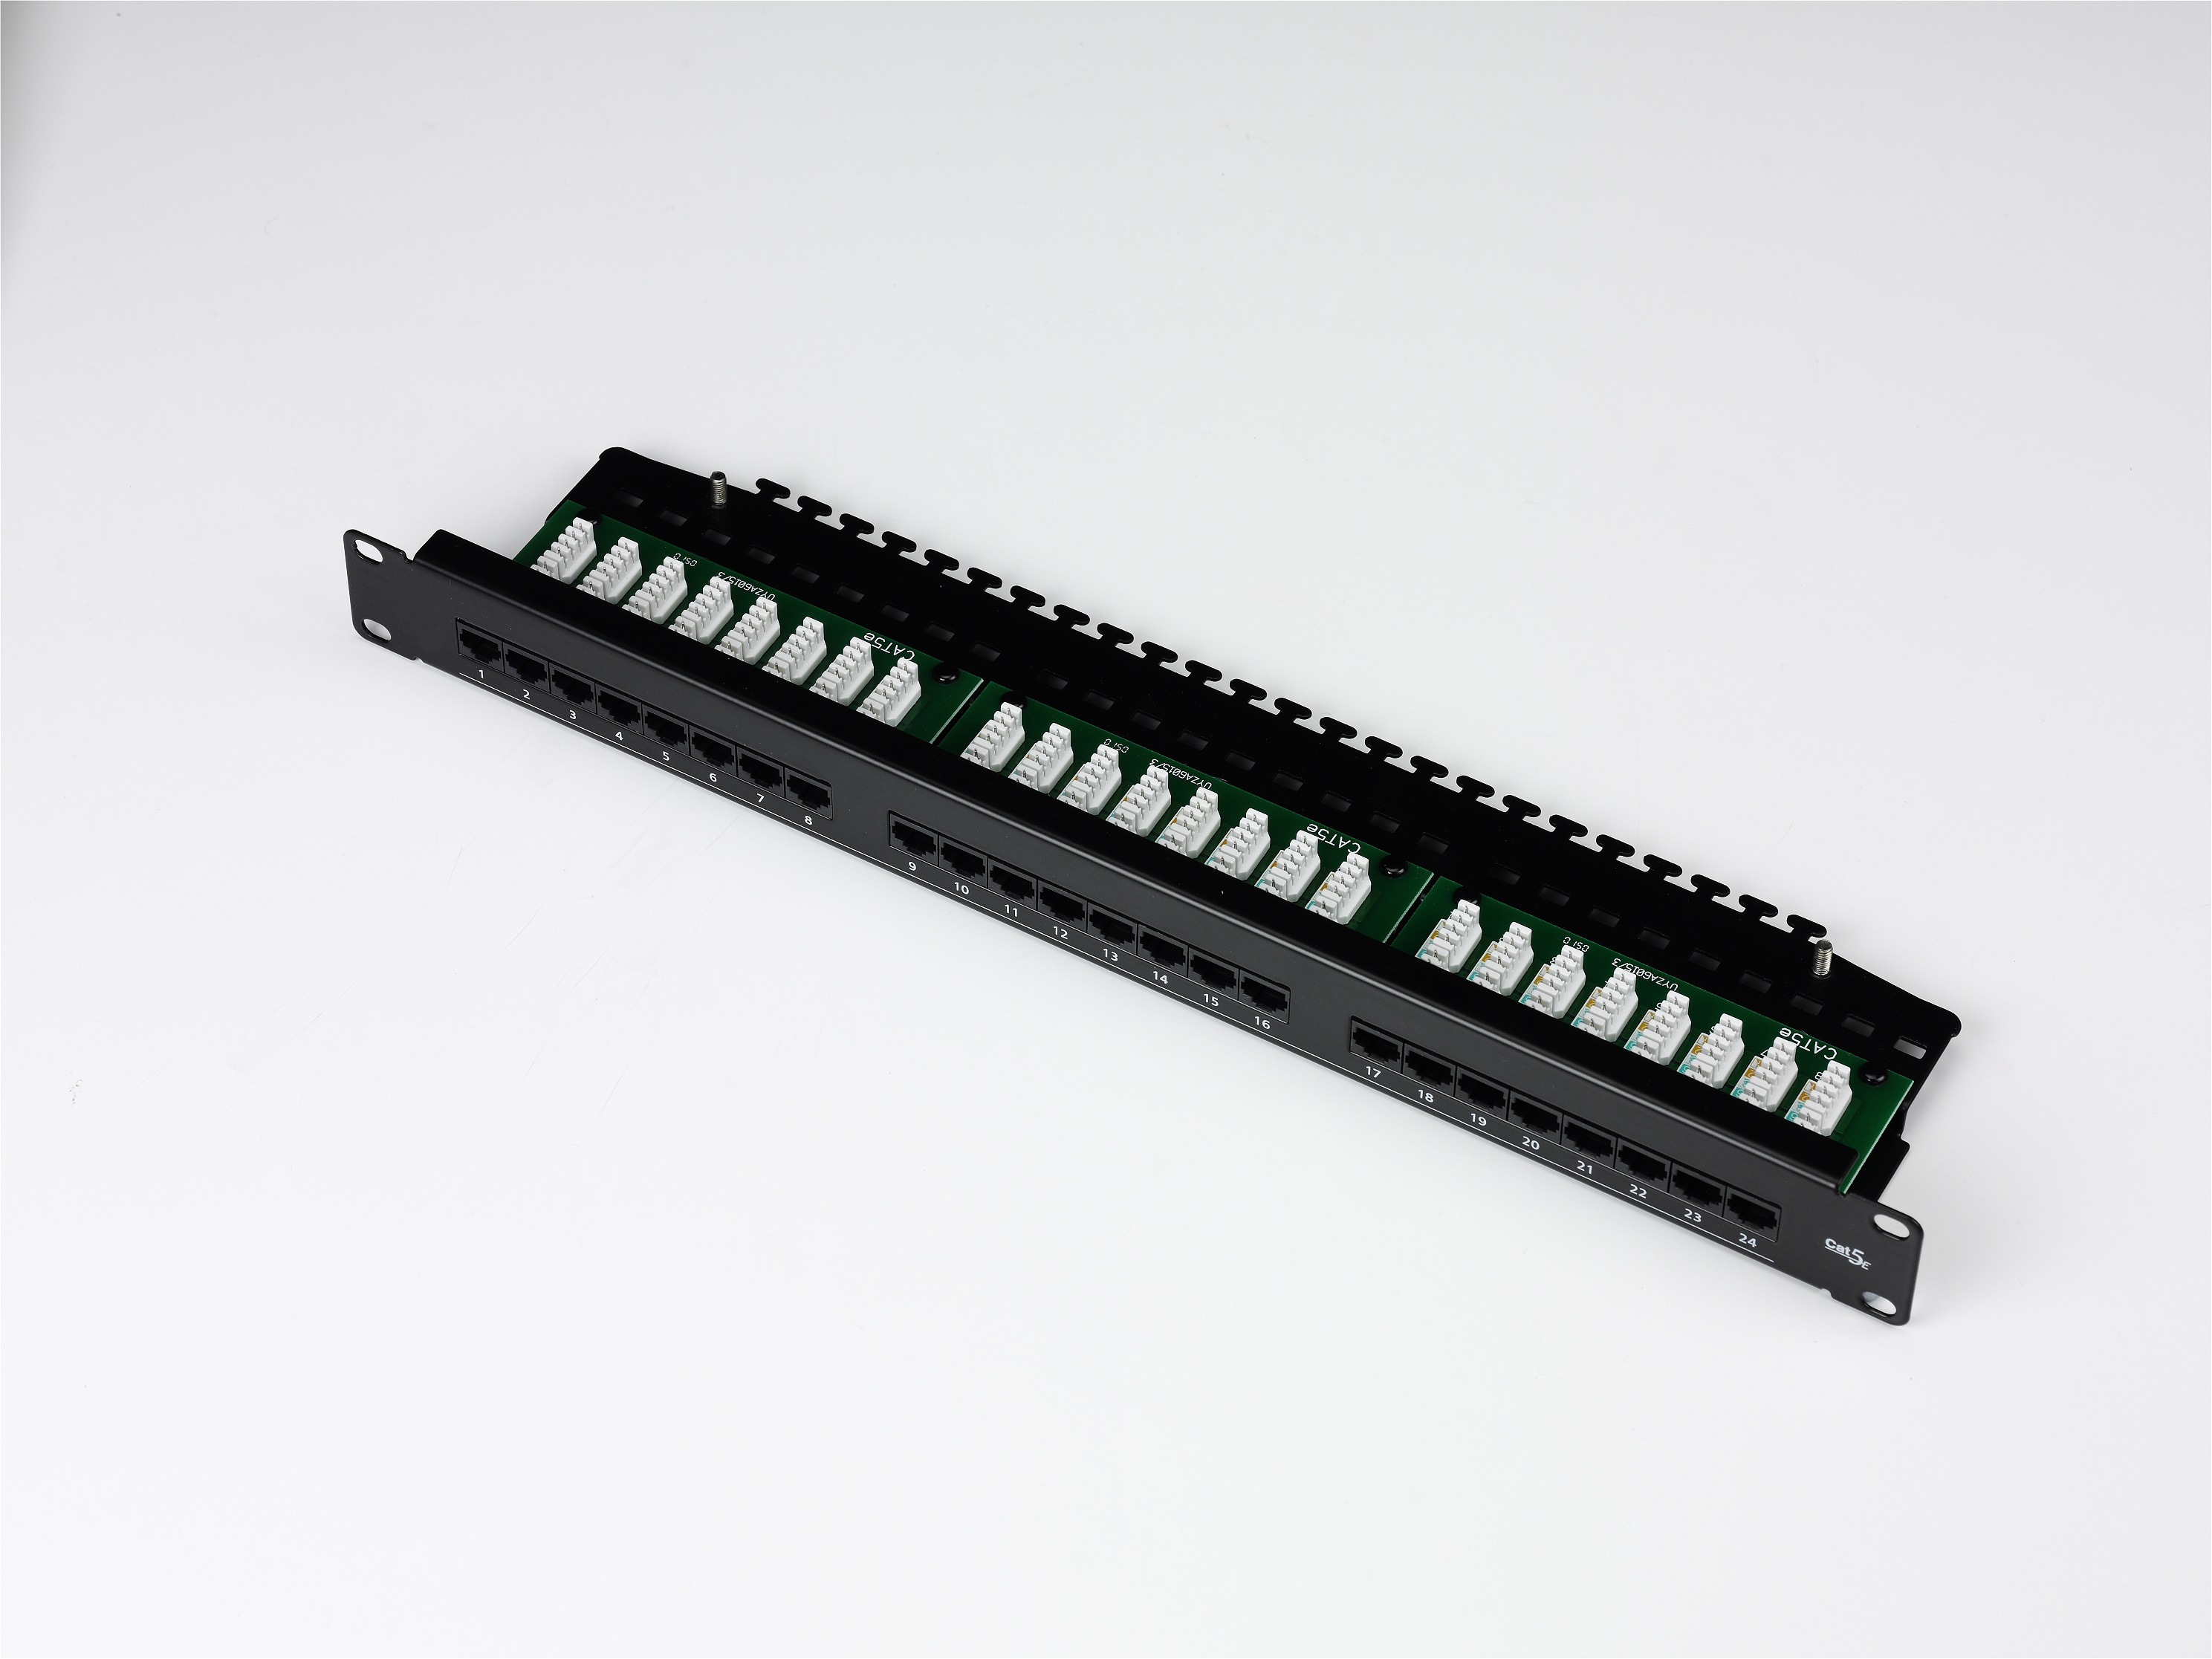 TUK FF24Lnl Cat5e 24 Port Patch Panel